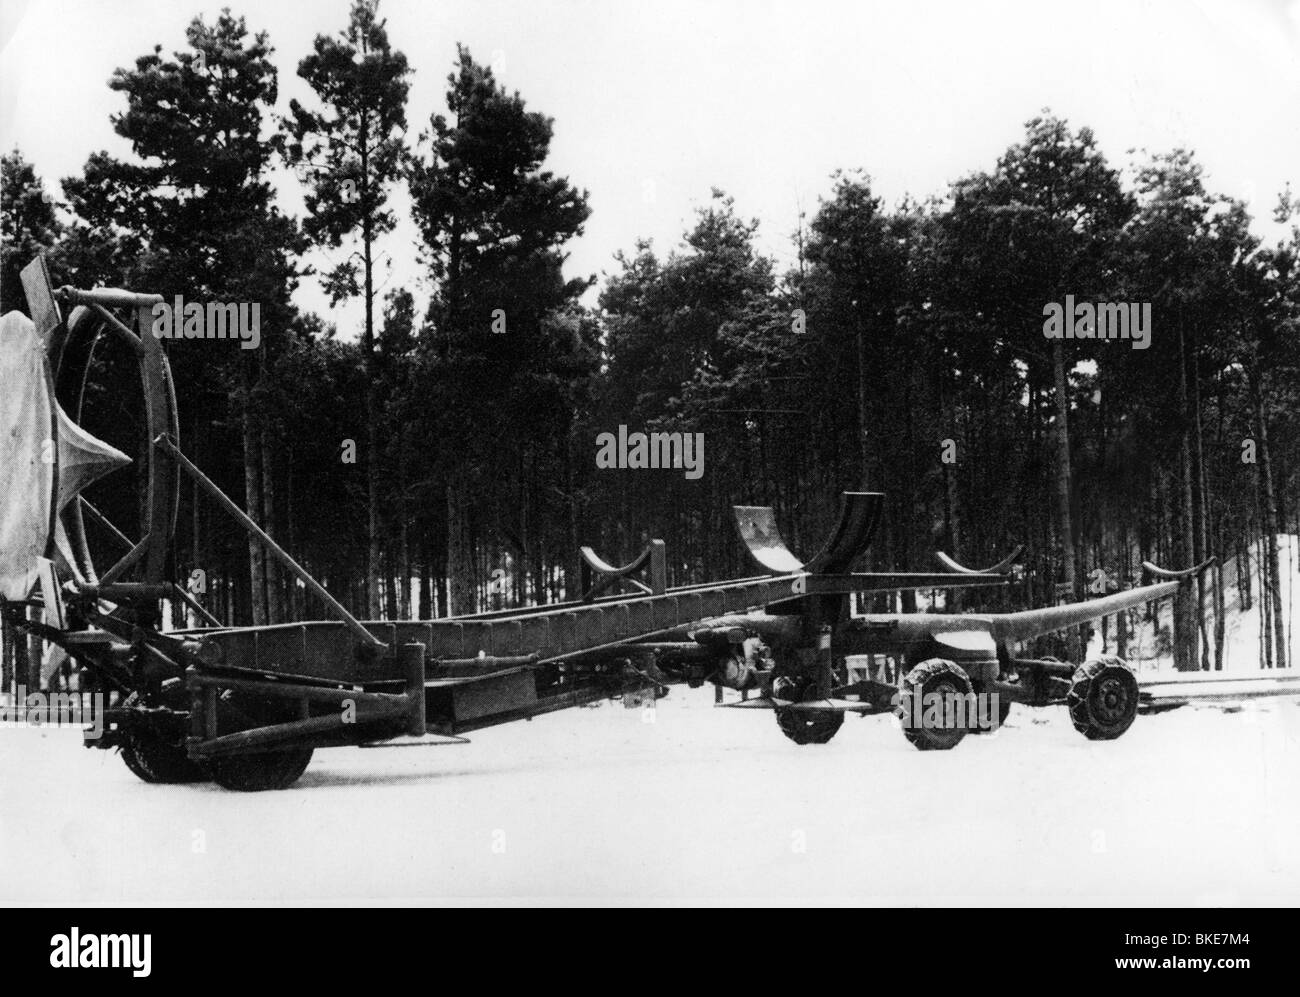 events, Second World War / WWII, Germany, Heeresversuchsanstalt (Army Research Center) Peenemuende 1942 - 1945, - Stock Image